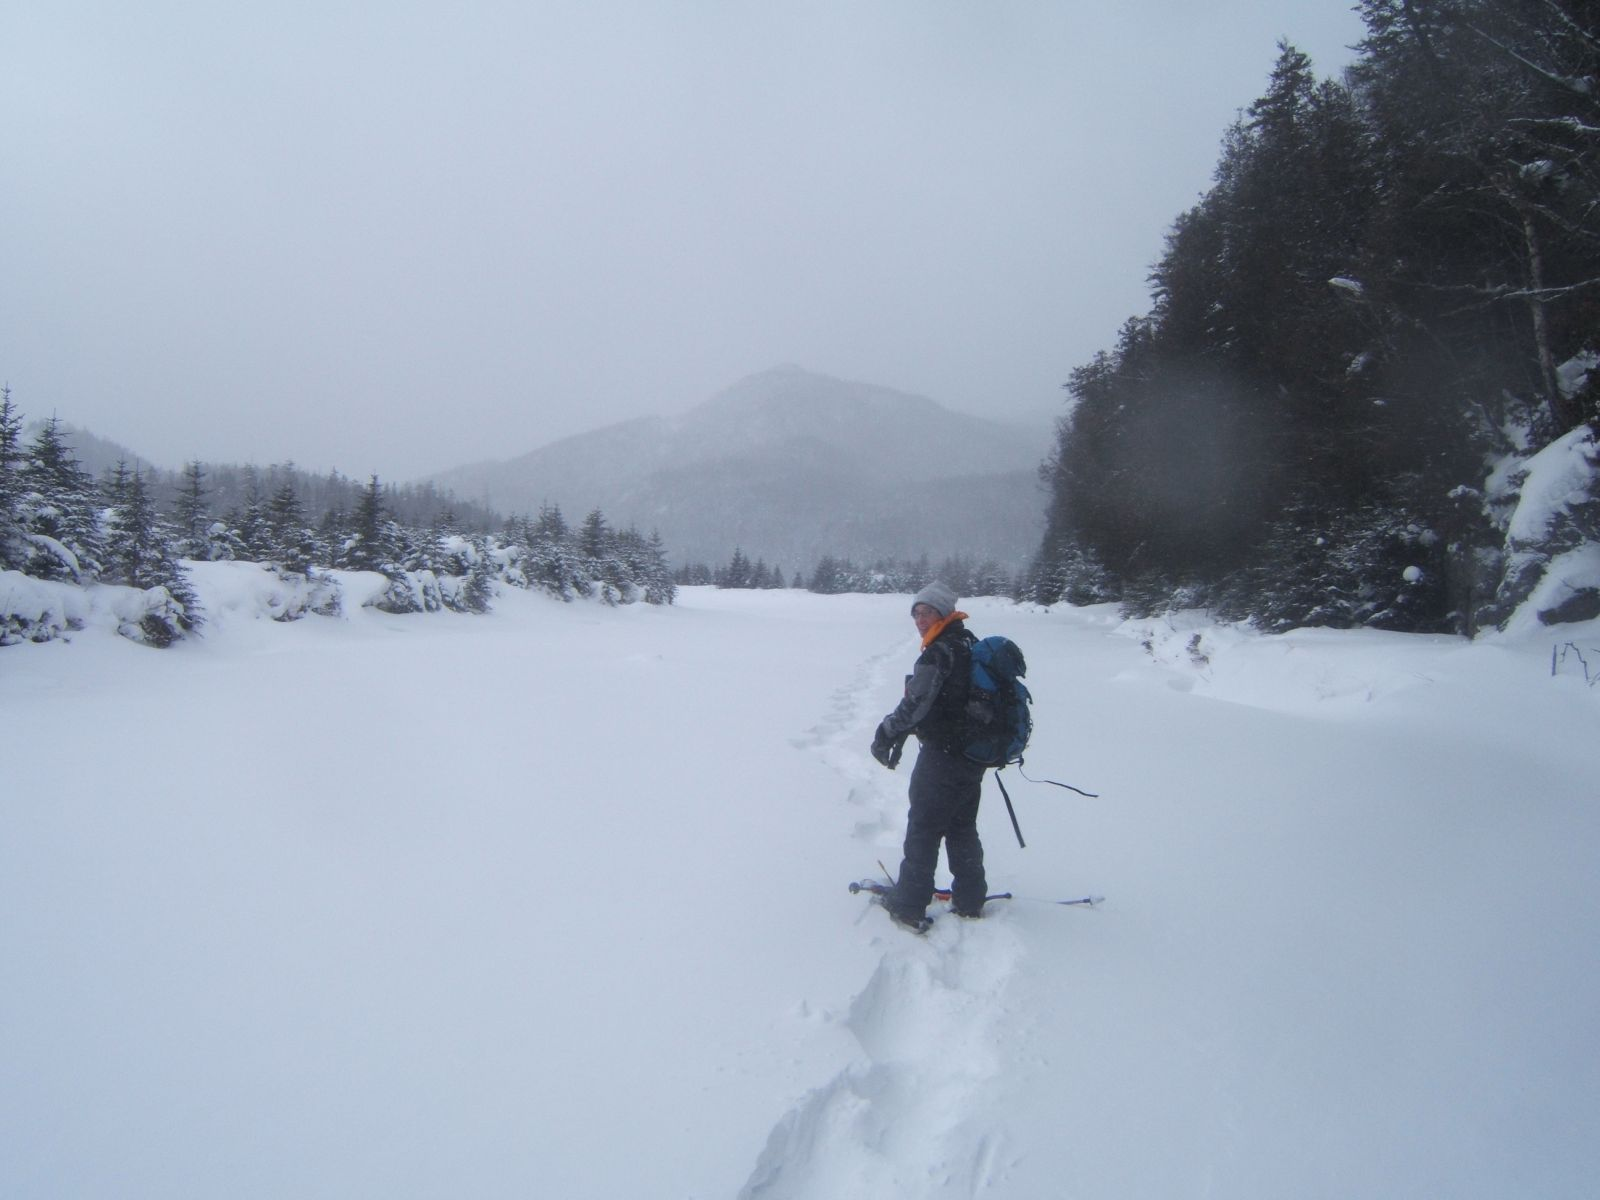 What kind of snowshoeing are you planning on doing?